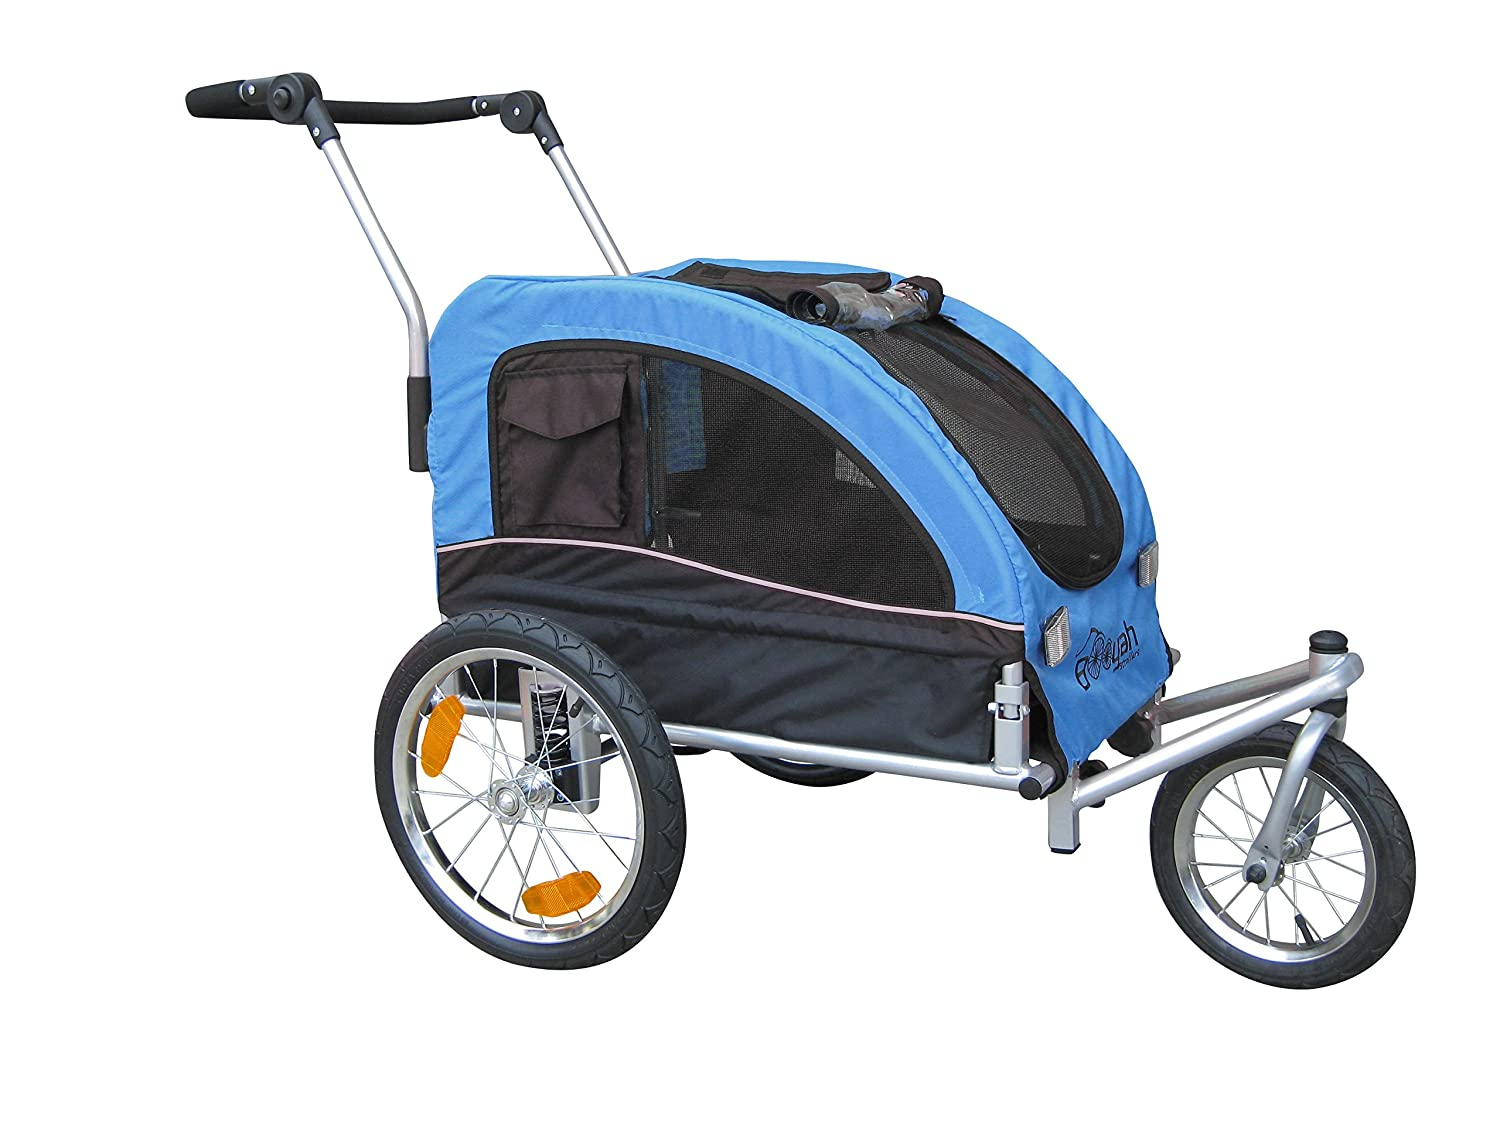 Booyah Medium Dog Stroller Pet Bike Trailer with Suspension – Blue